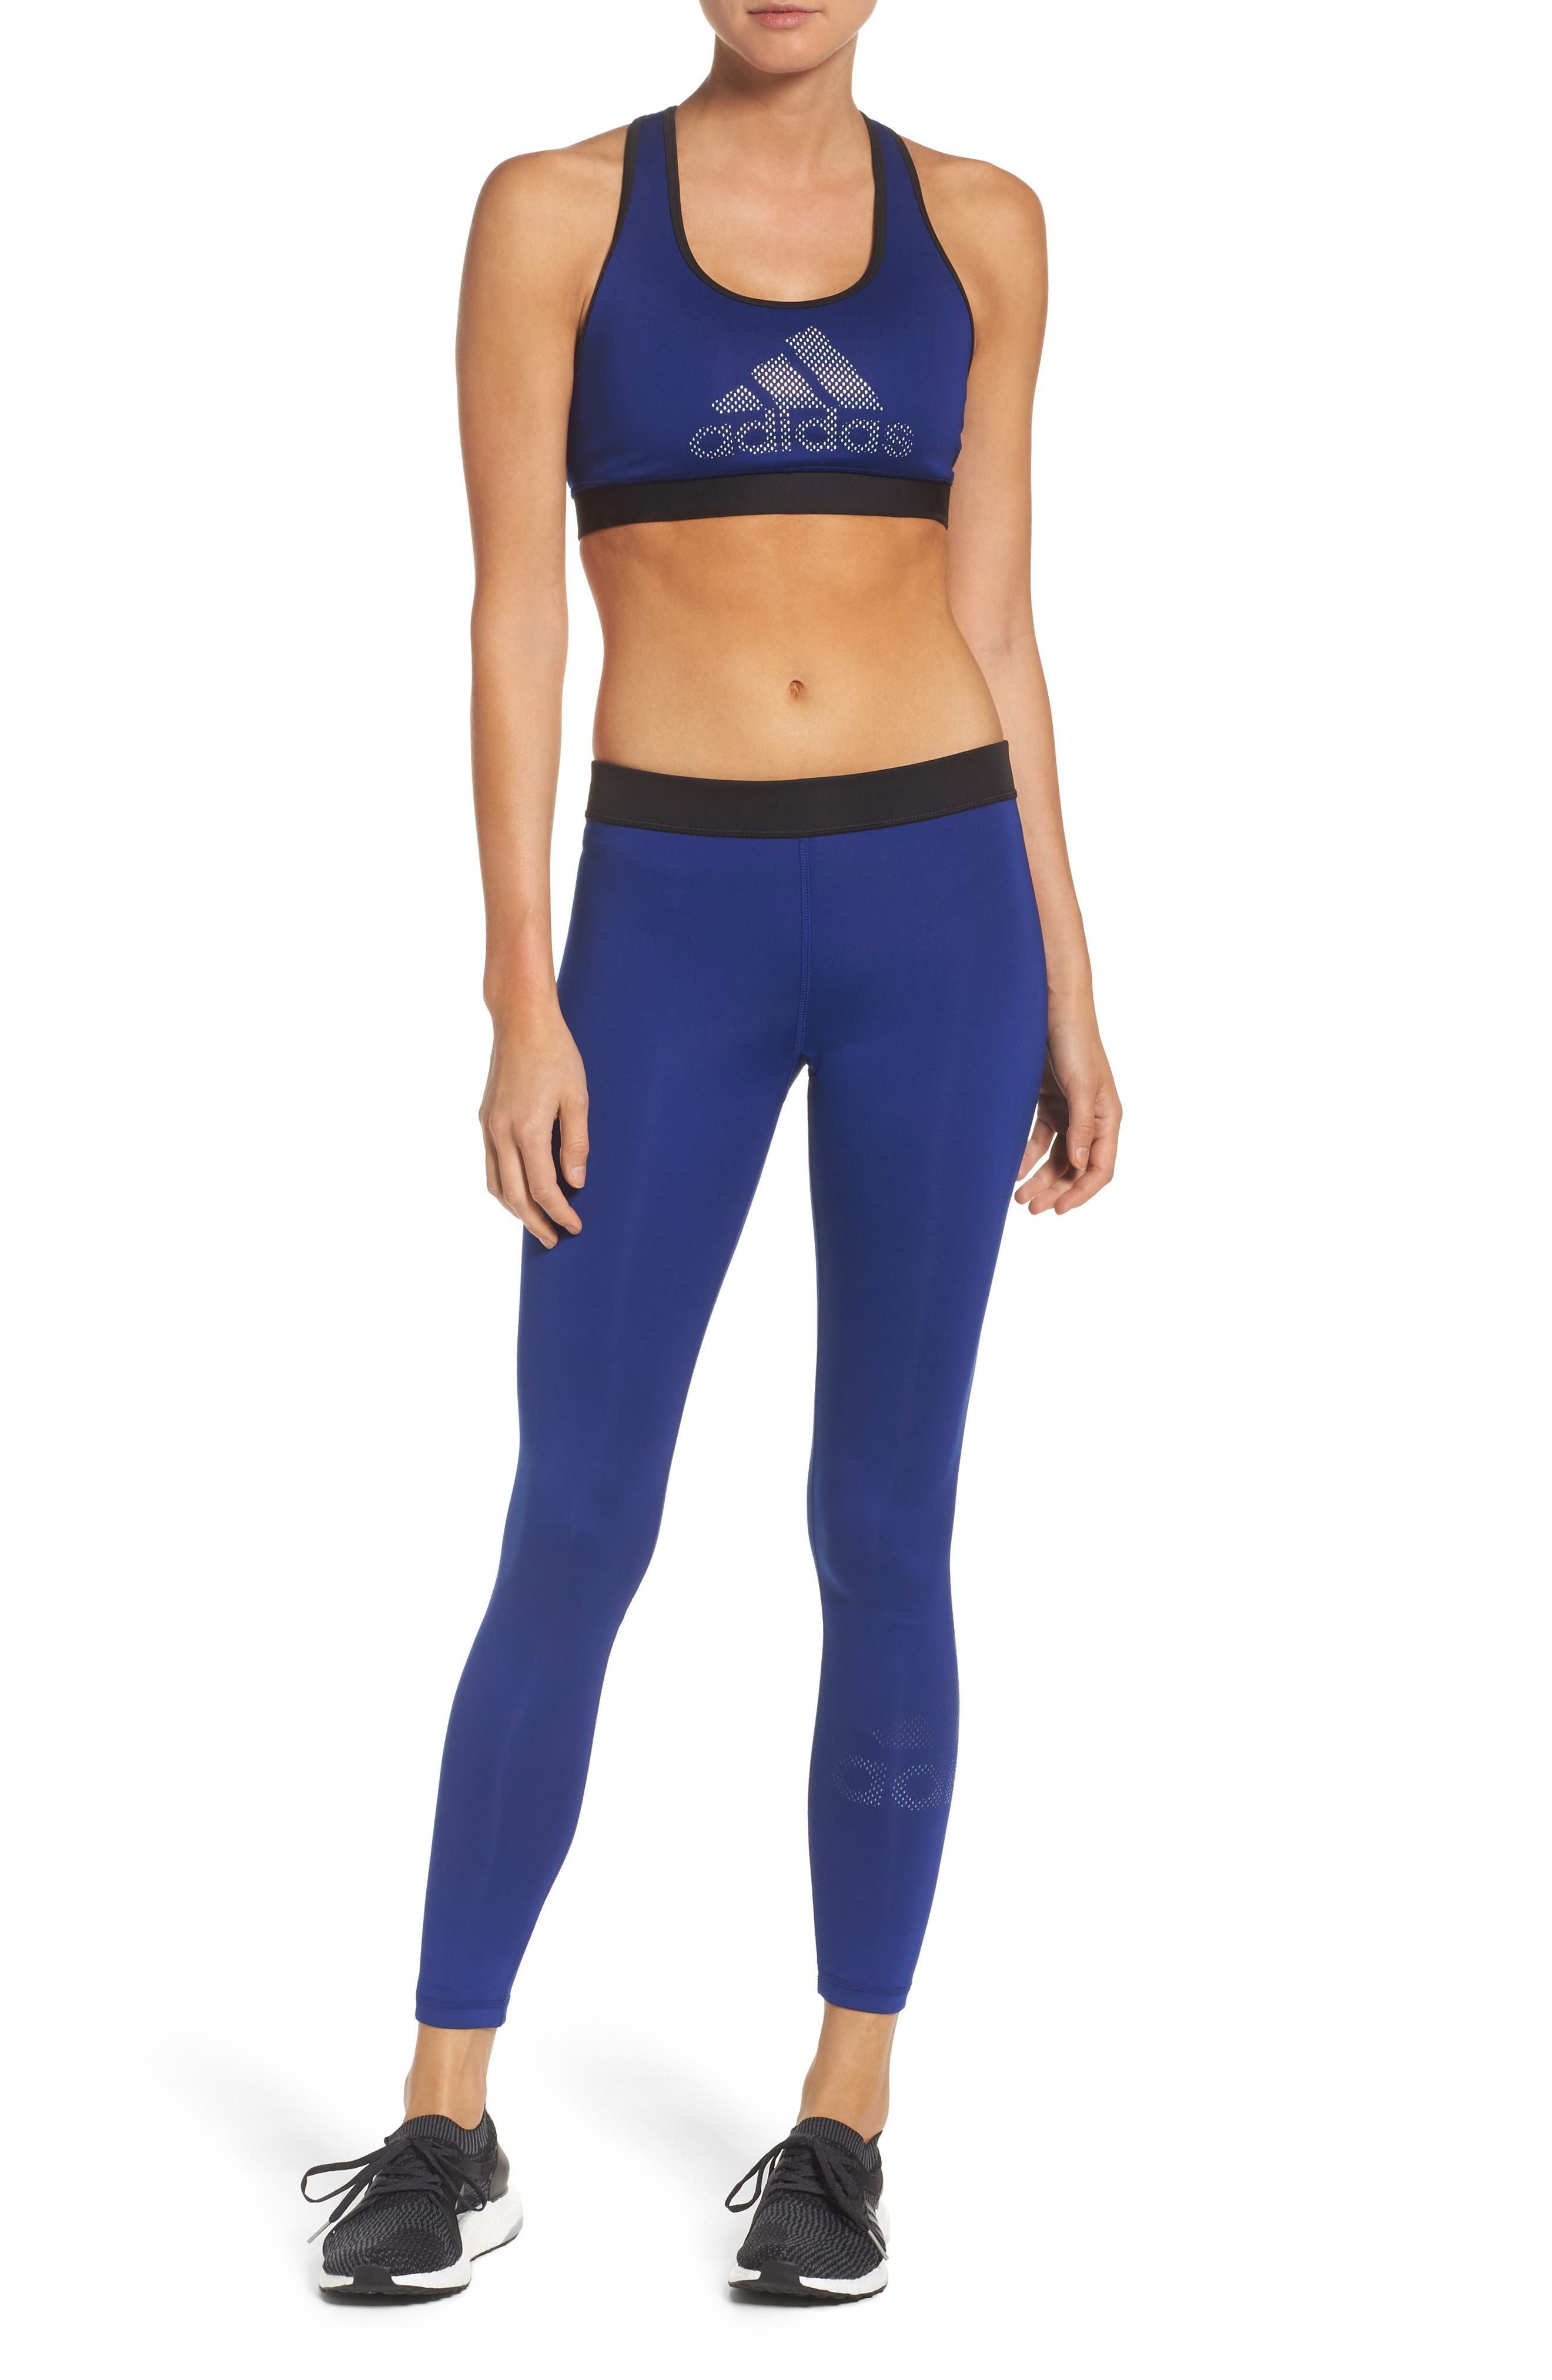 adidas Sports Bra & Tights Outfit with Accessories